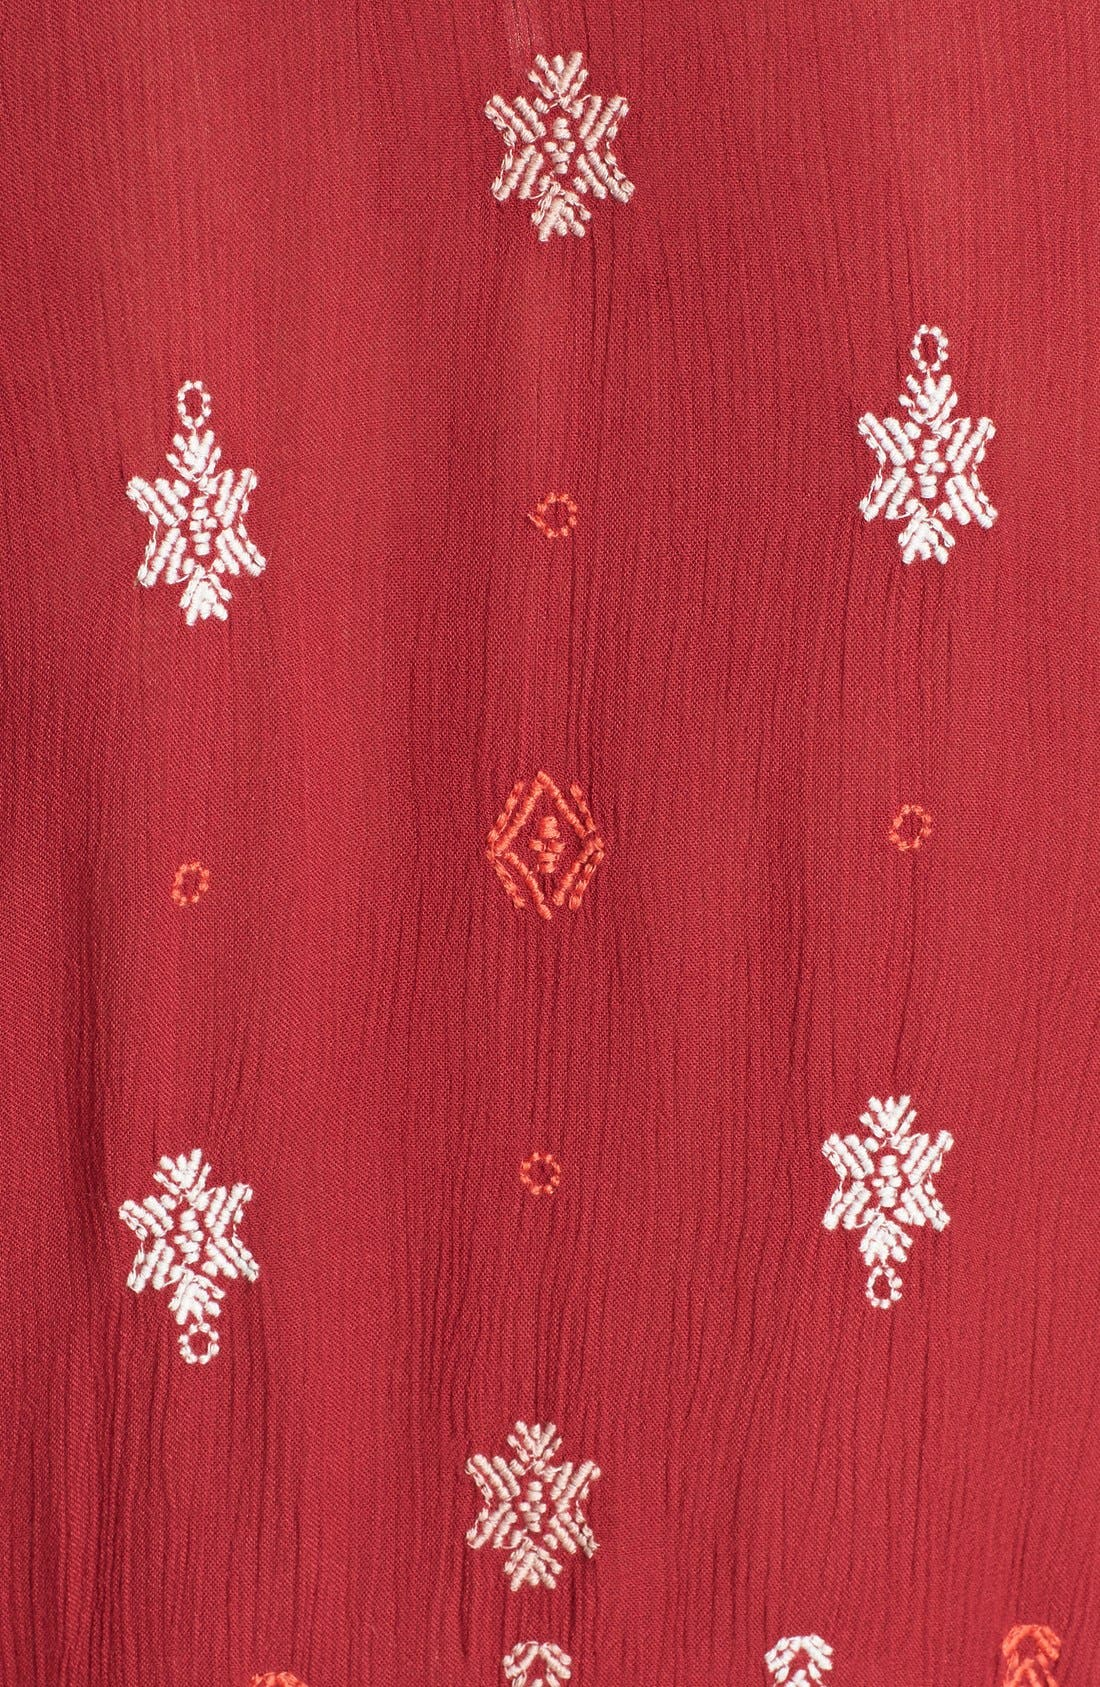 'Star Gazer' Embroidered Tunic Dress,                             Alternate thumbnail 6, color,                             Red Combo